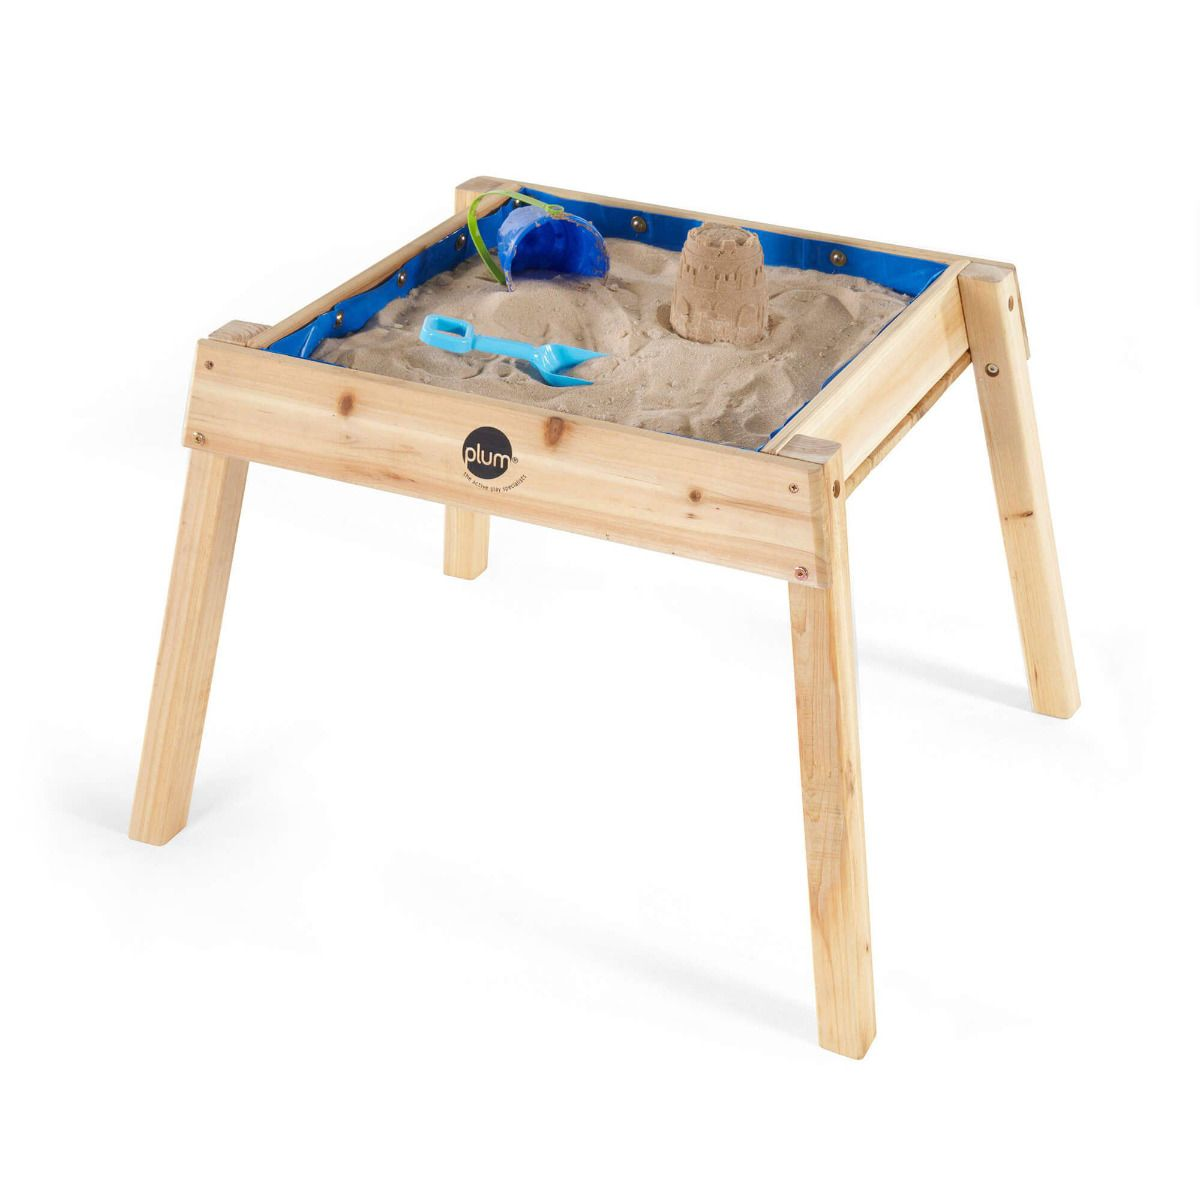 PLUM® Build & Splash Wooden Sand & Water Table – FREE WA Delivery